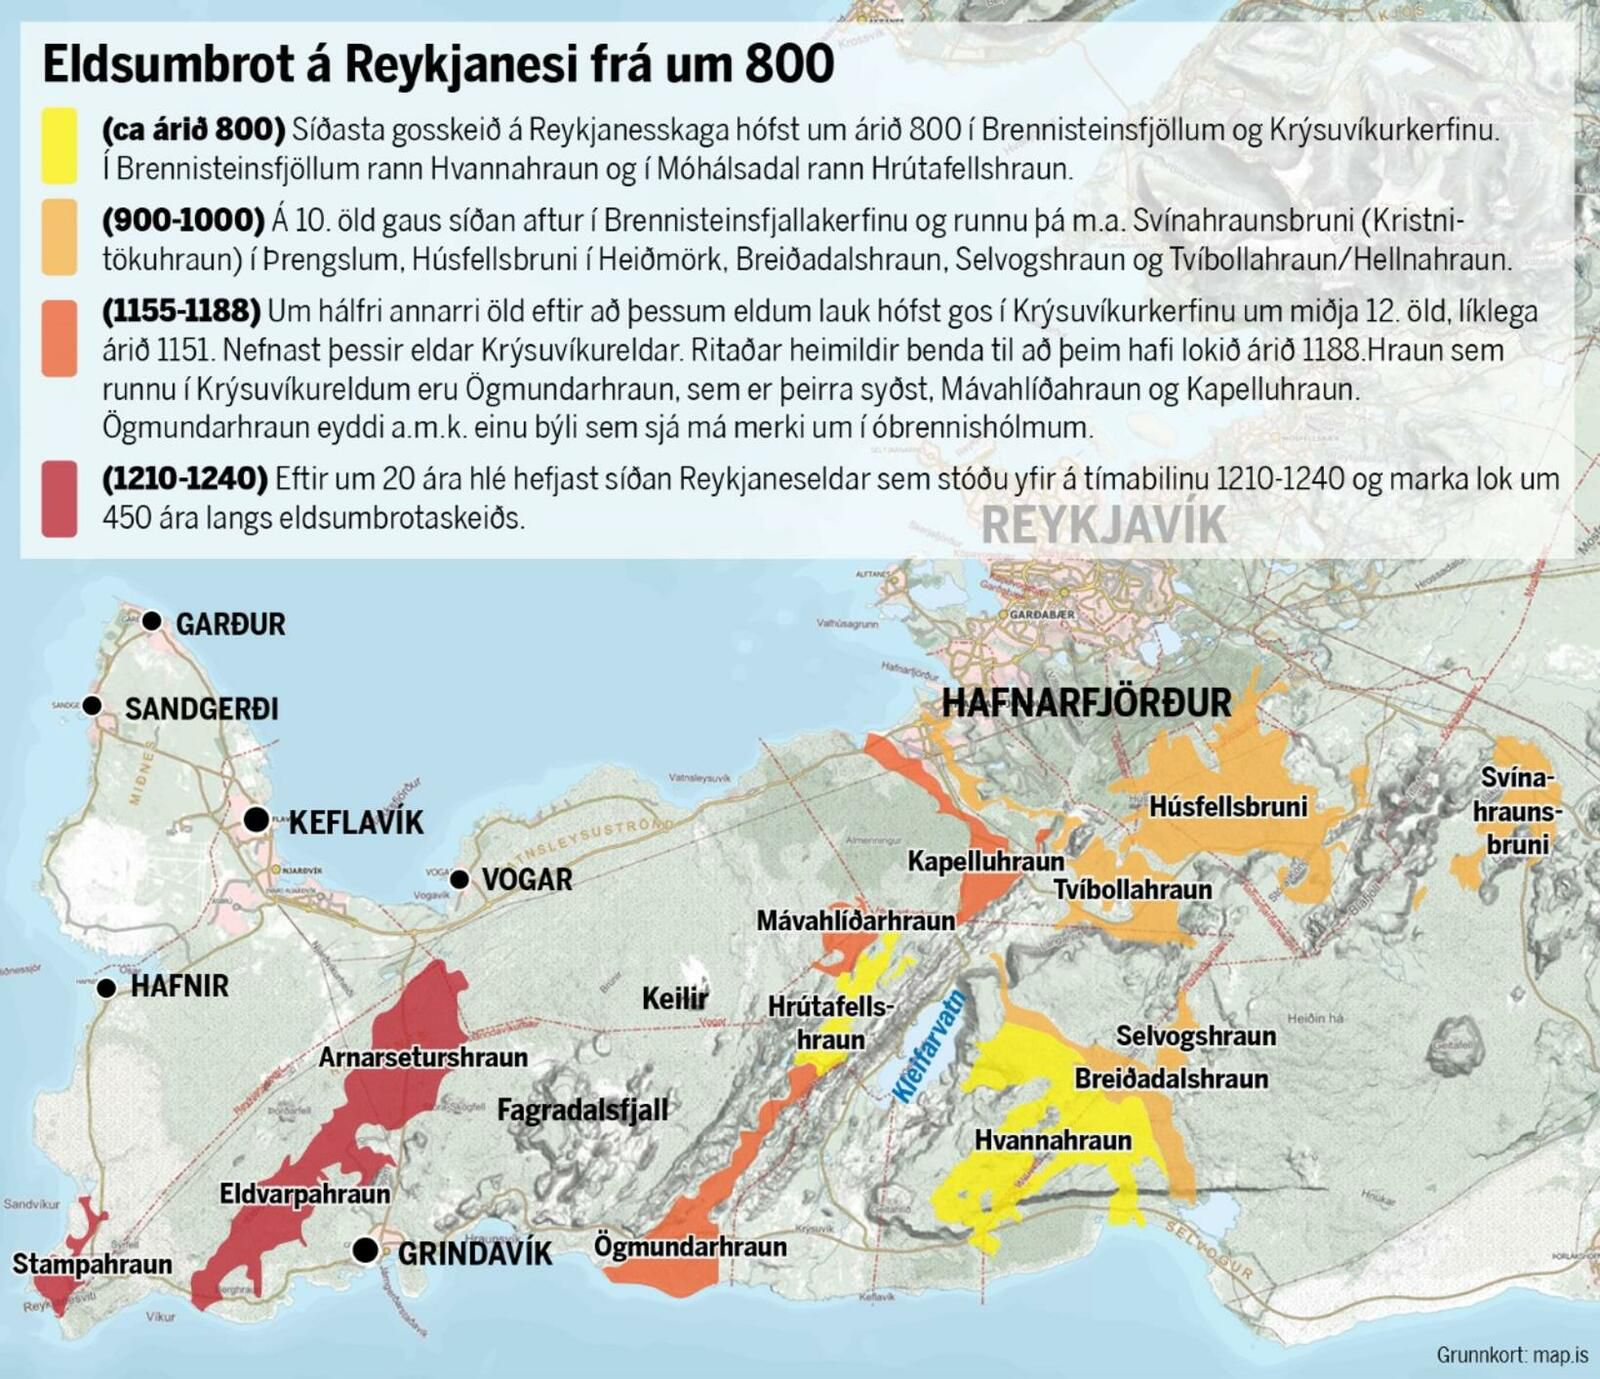 2021.03.04 Reykjanes - Review of eruptions in the Peninsula since the year 800, and their lava flows - graph mbl.is